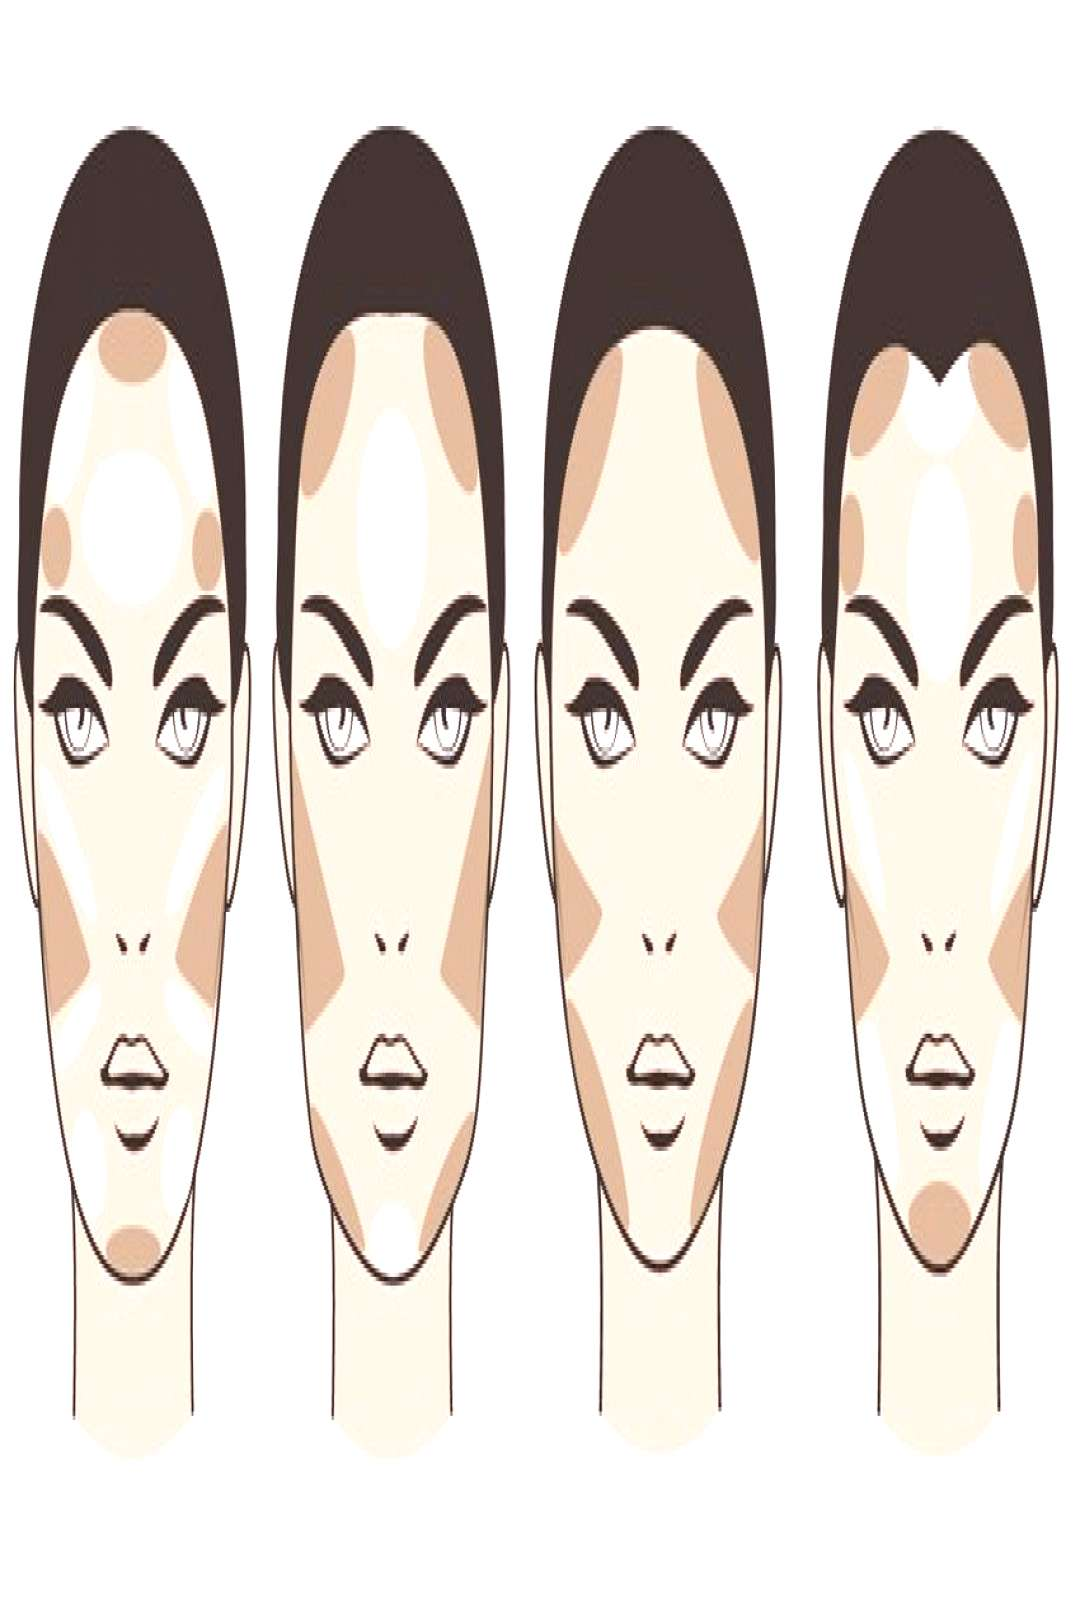 Contouring: This is how the make-up writ ... -  Contouring is used differently depending on the sha